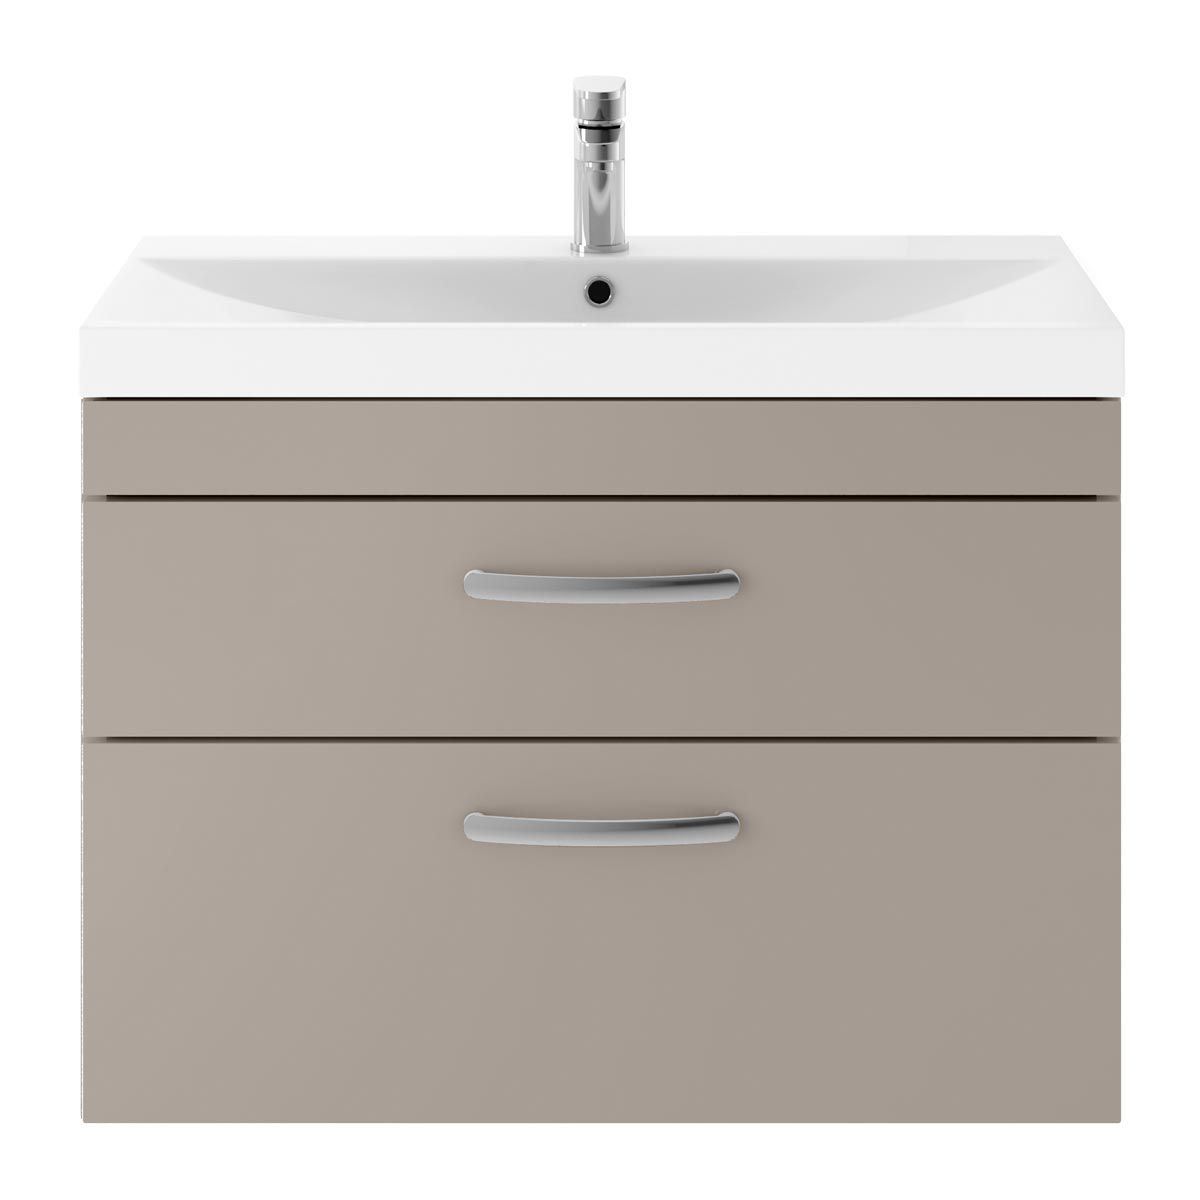 Nuie Athena Stone Grey 2 Drawer Wall Hung Vanity Unit with 50mm Profile Basin 800mm